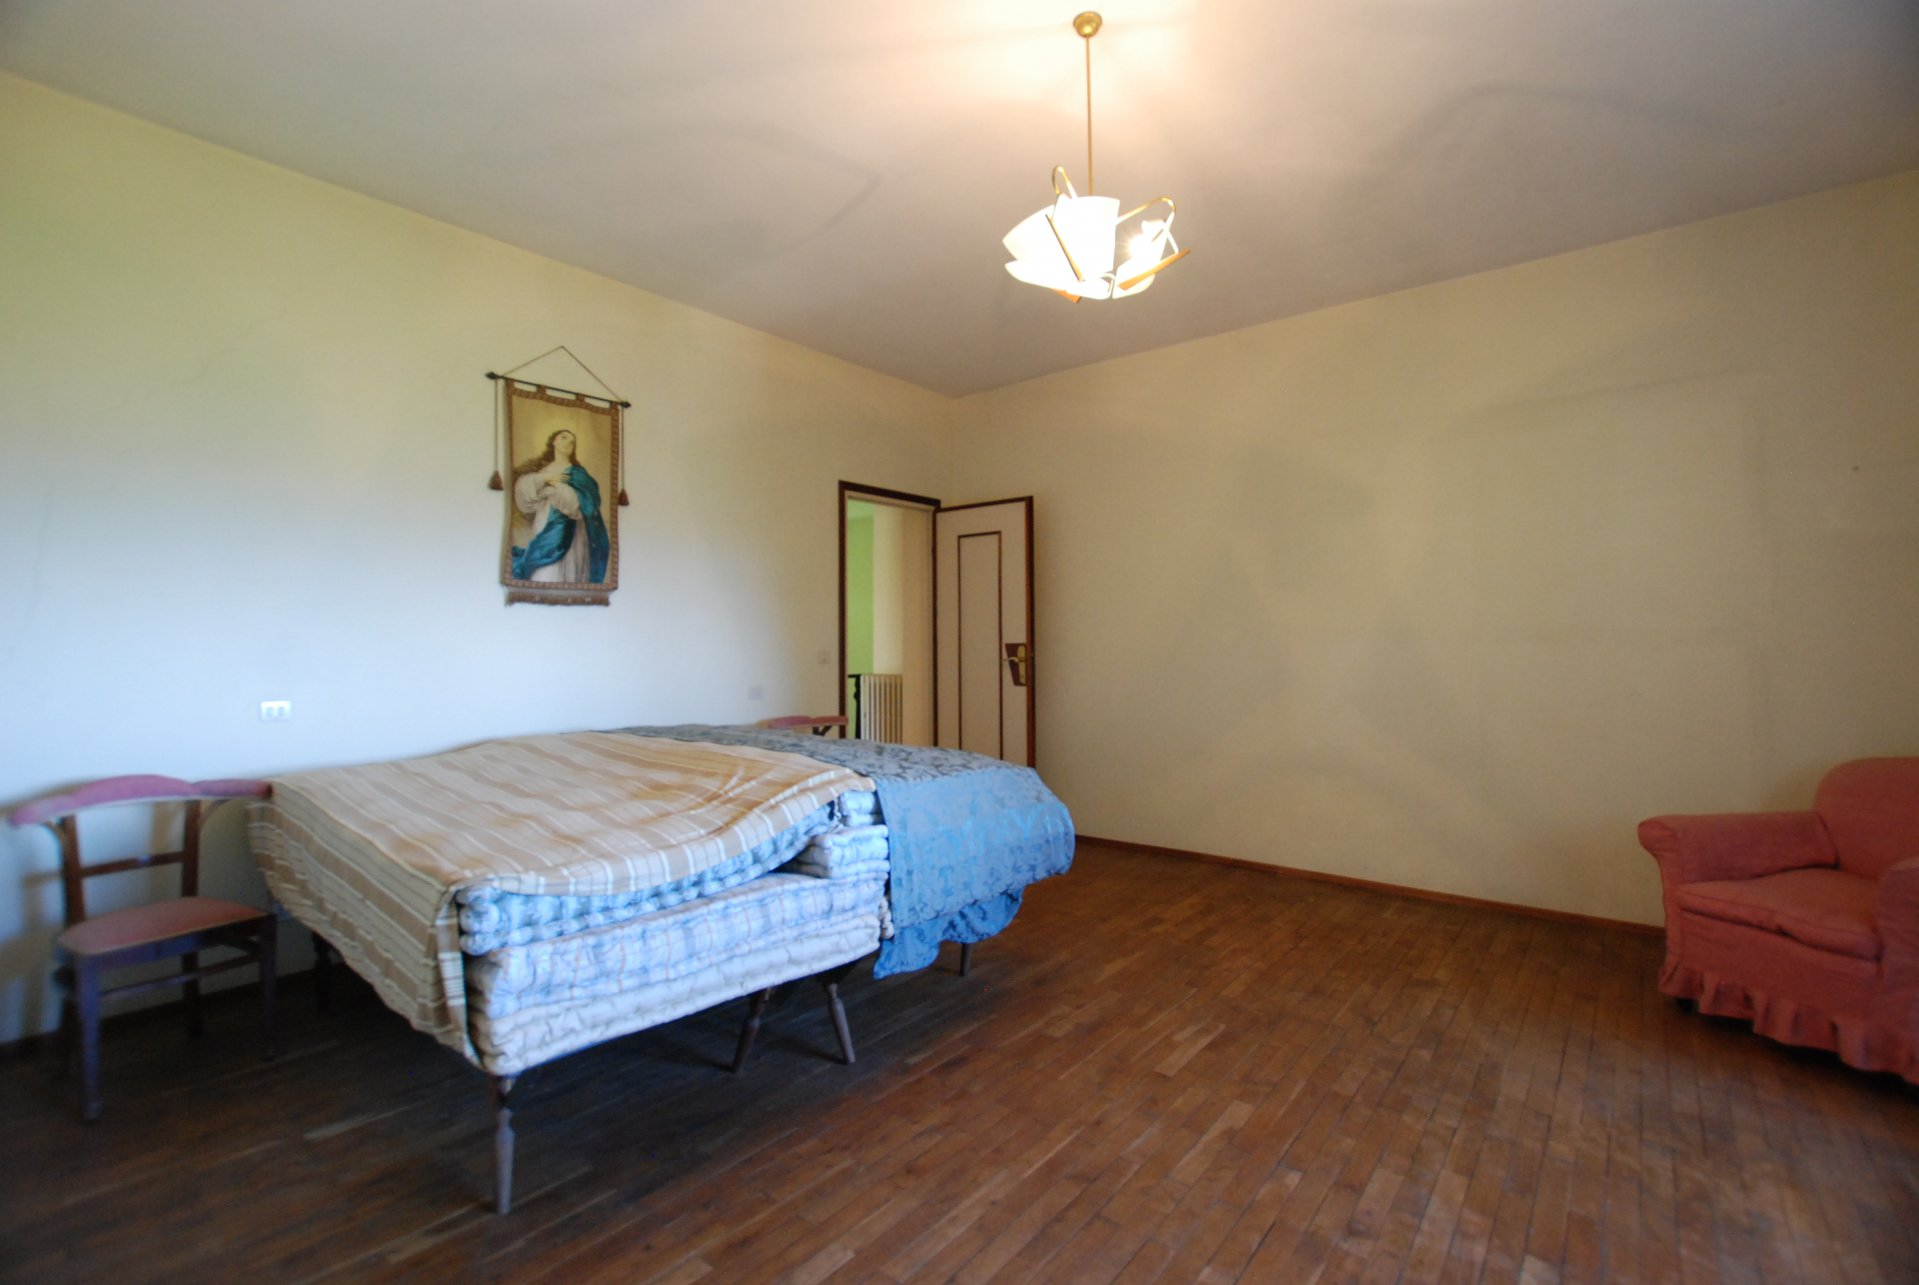 Period villa to be restored for sale in Gignese centre - guest bedroom